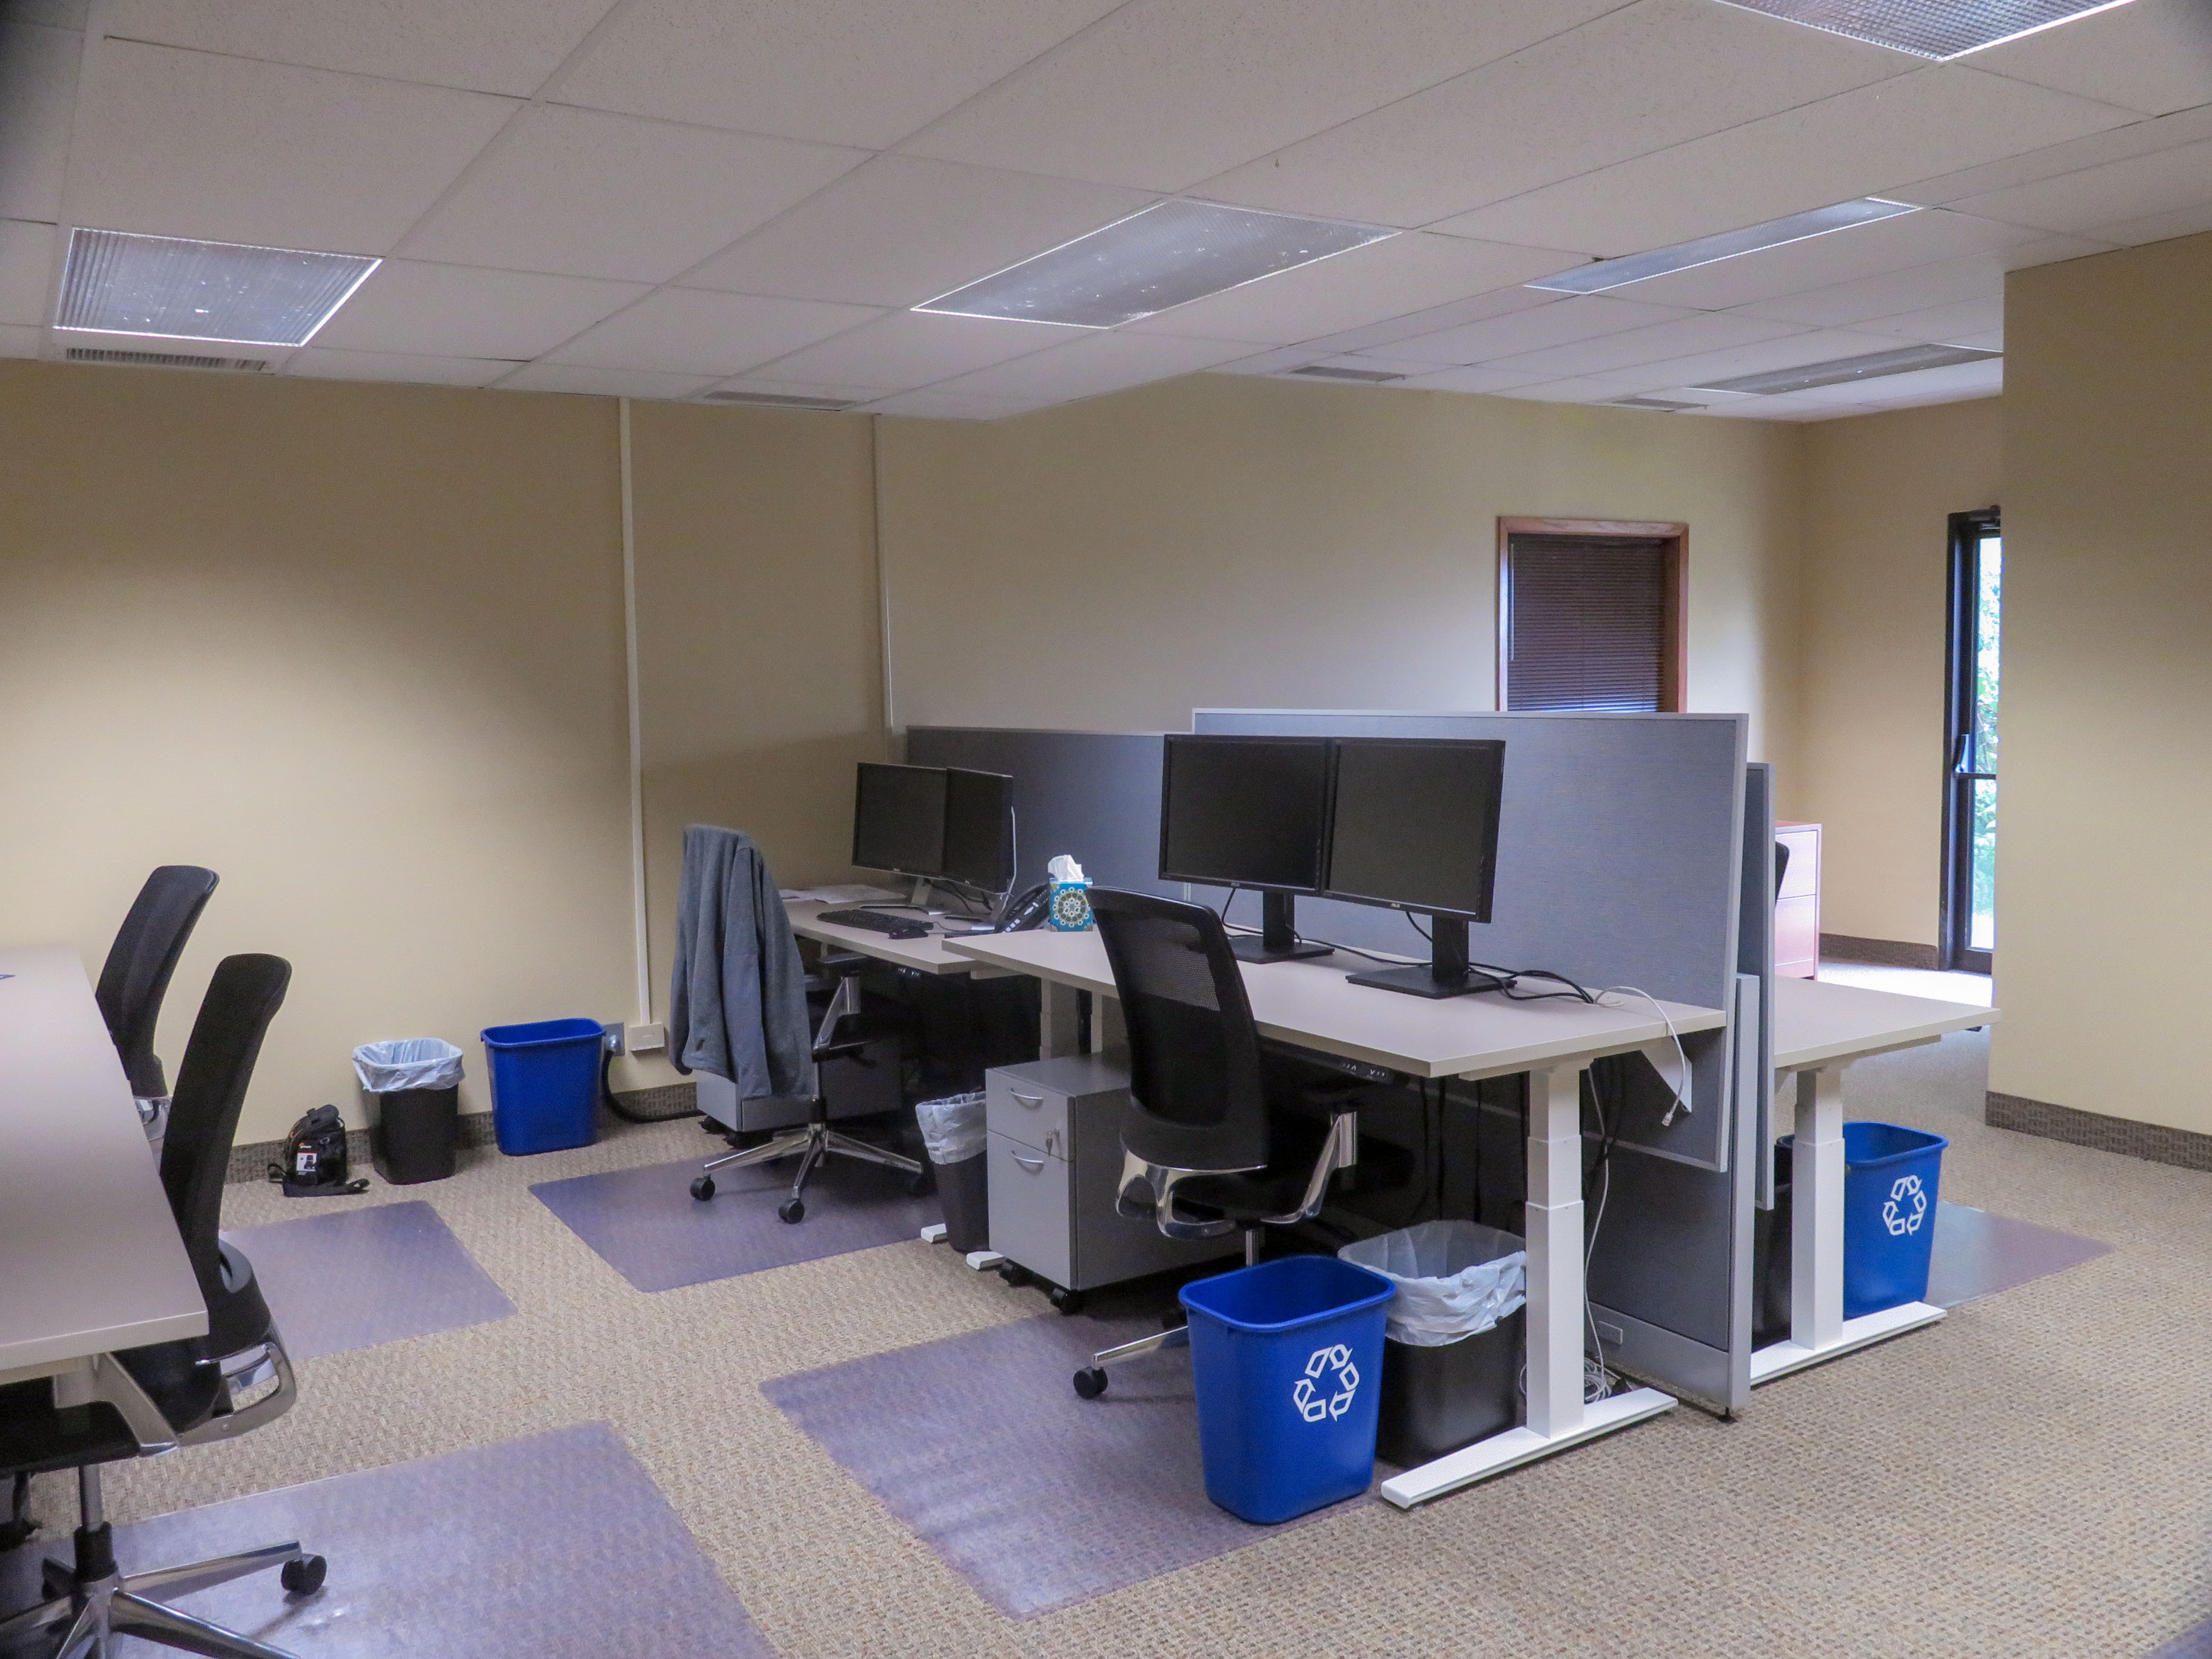 Photo showing employee work-space featuring adjustable desks.